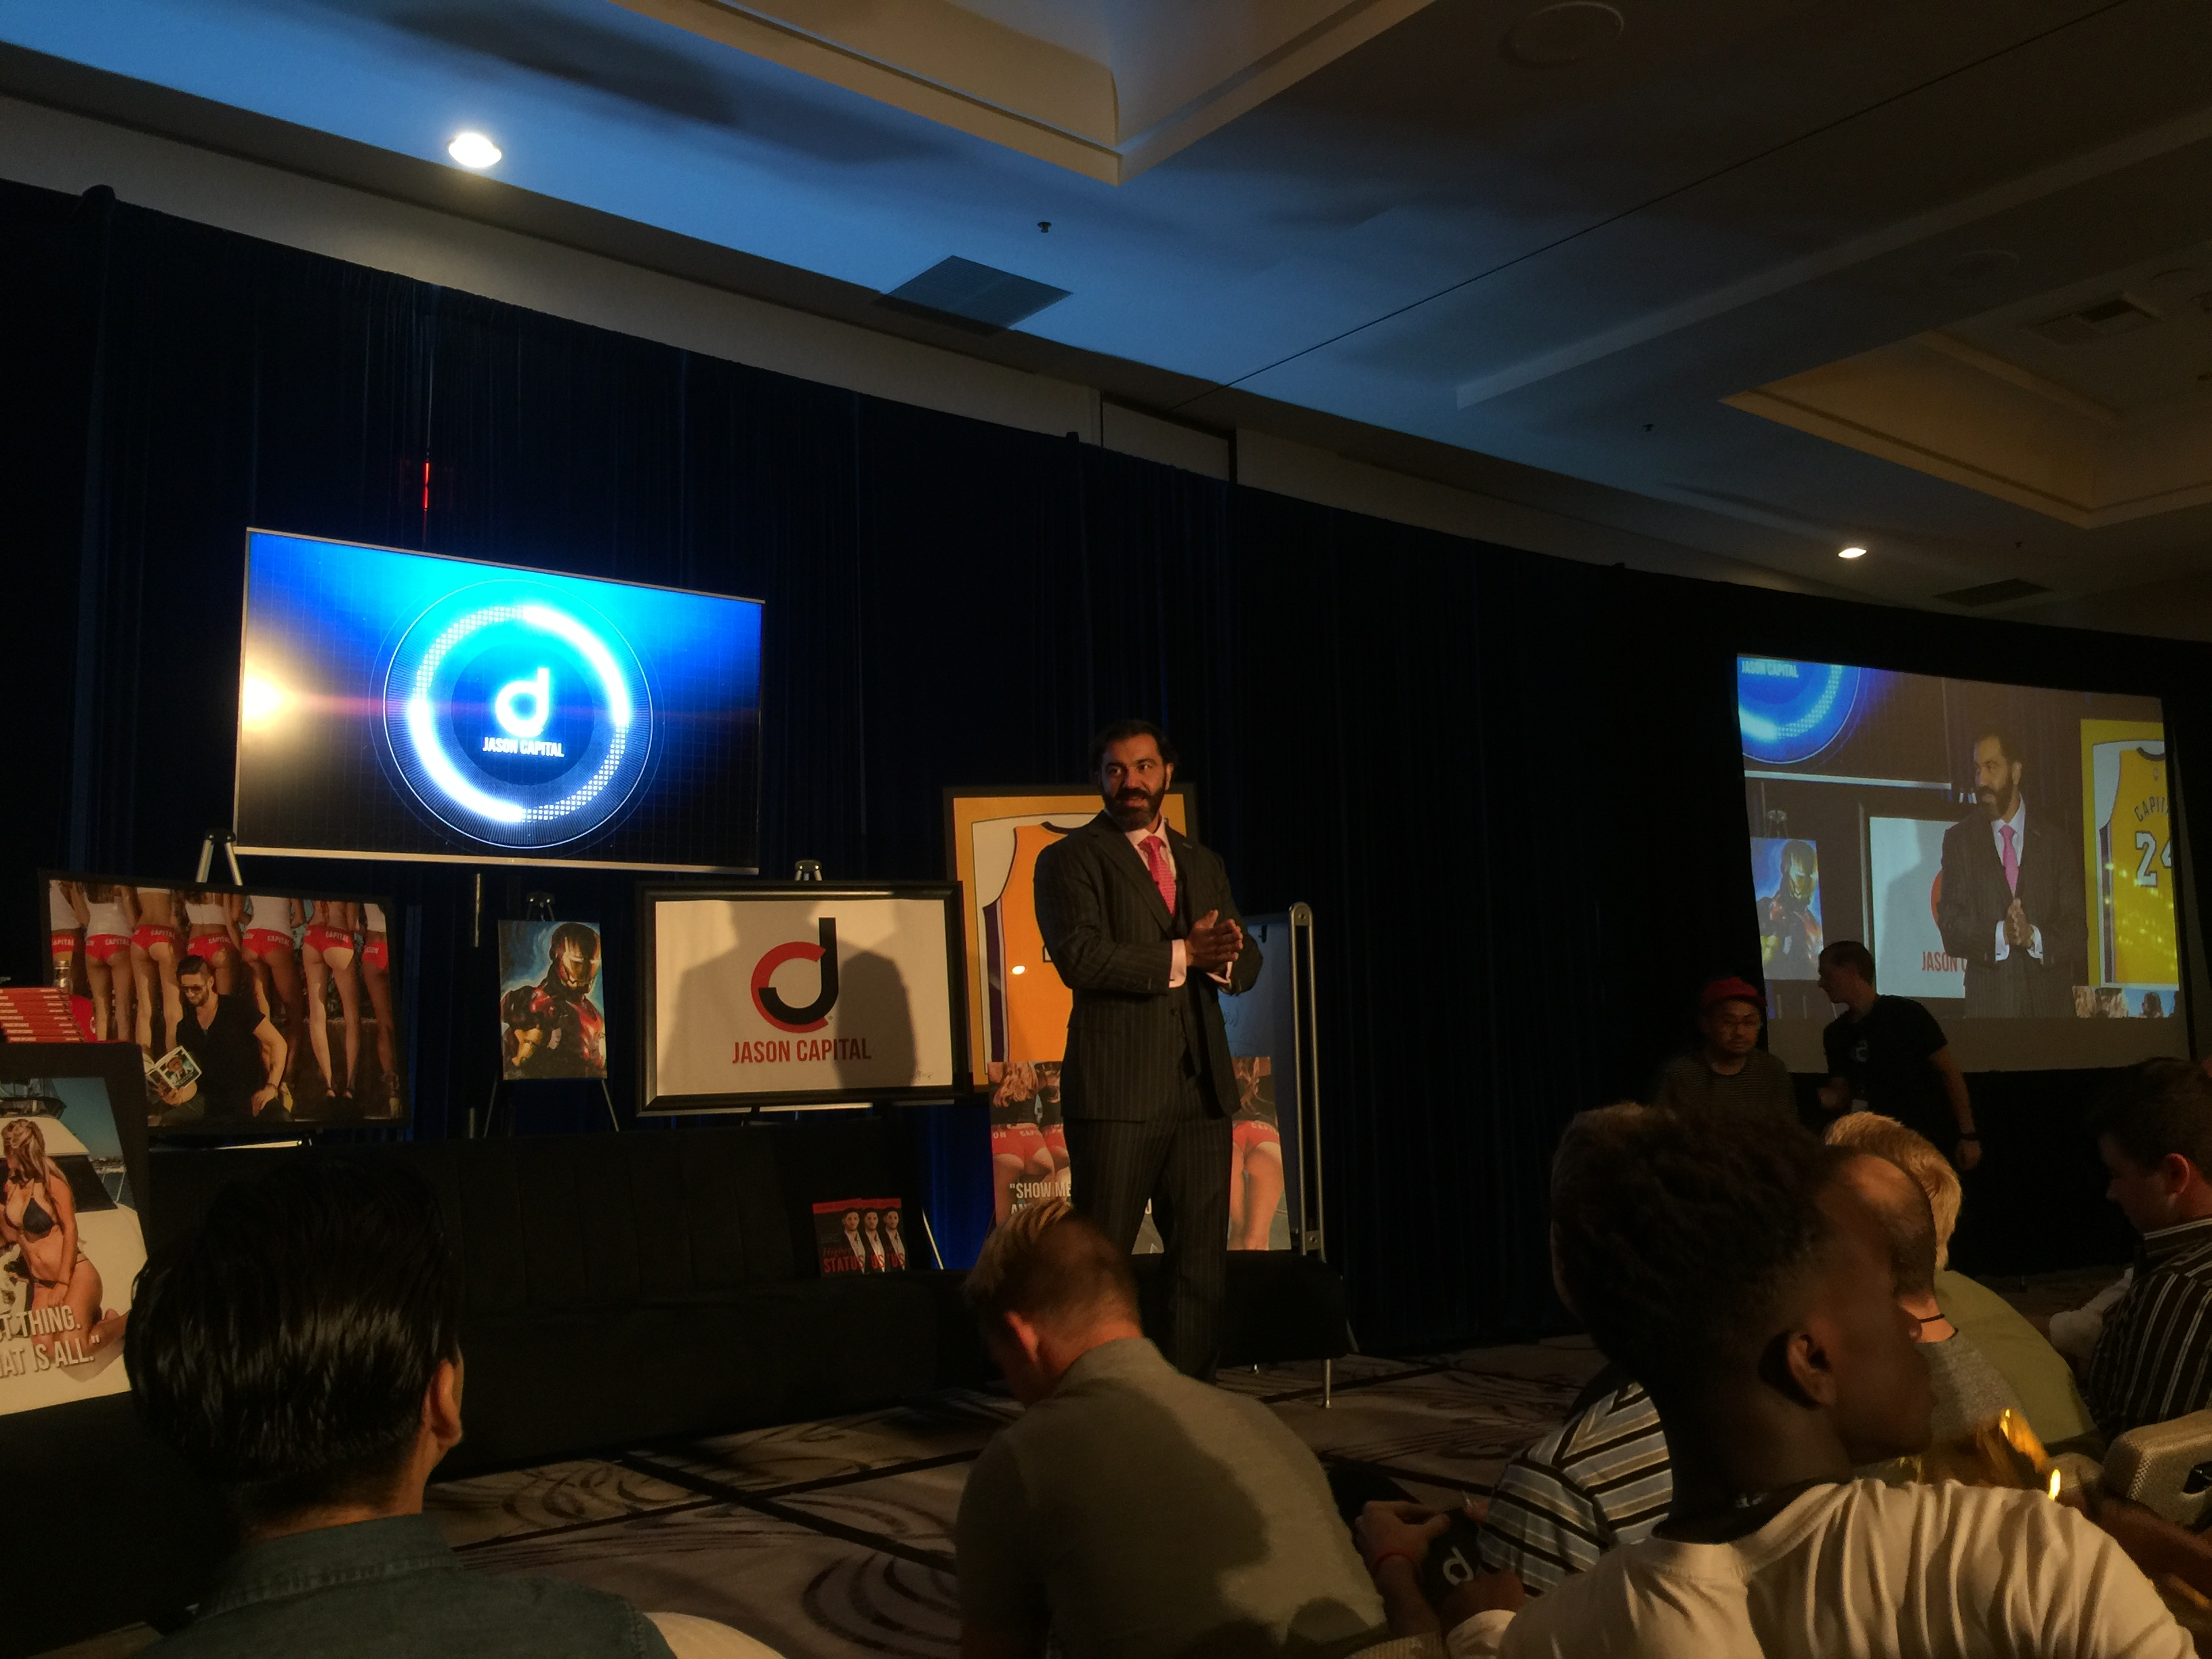 Bedros Keuilian @ the High Status Summit